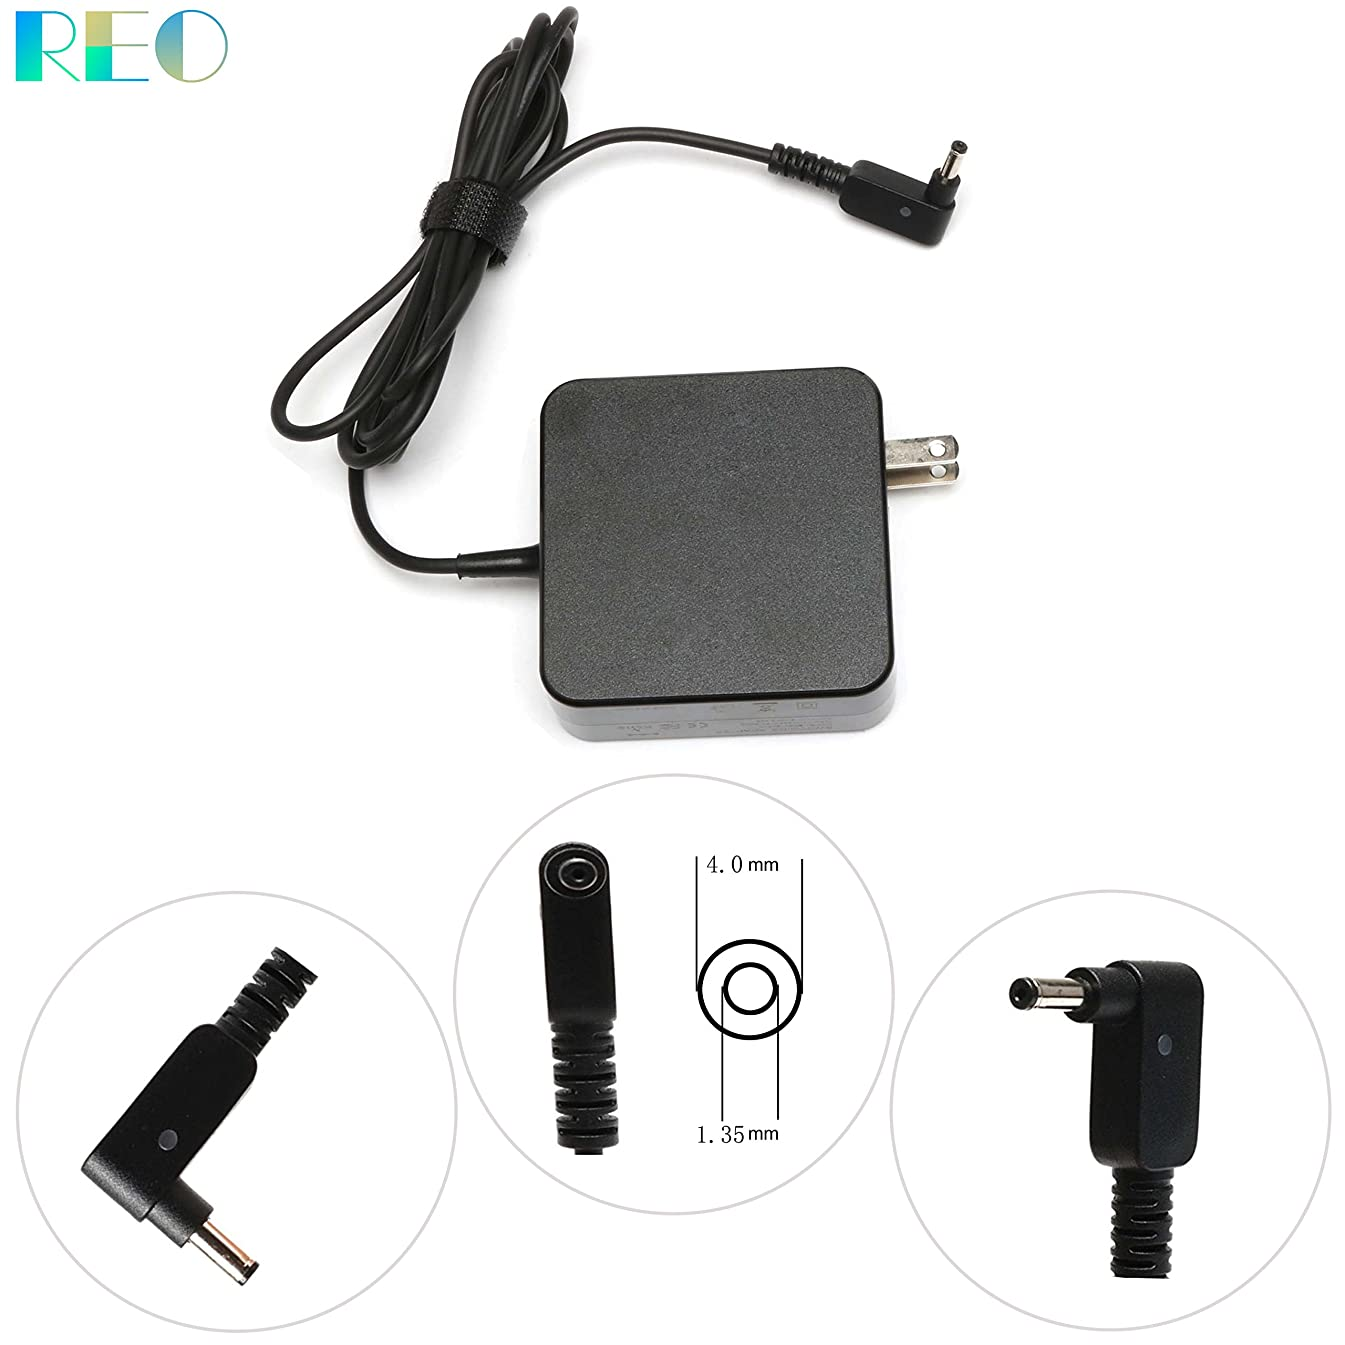 New 65W AC Charger For Asus Zenbook UX305 UX305CA UX305LA UX305FA UX303UA UX303UB UX303LA UX303LN Ux430 UX430UA UX430UQ UX430U Laptop Power Adapter Supply Cord-12 months warranty